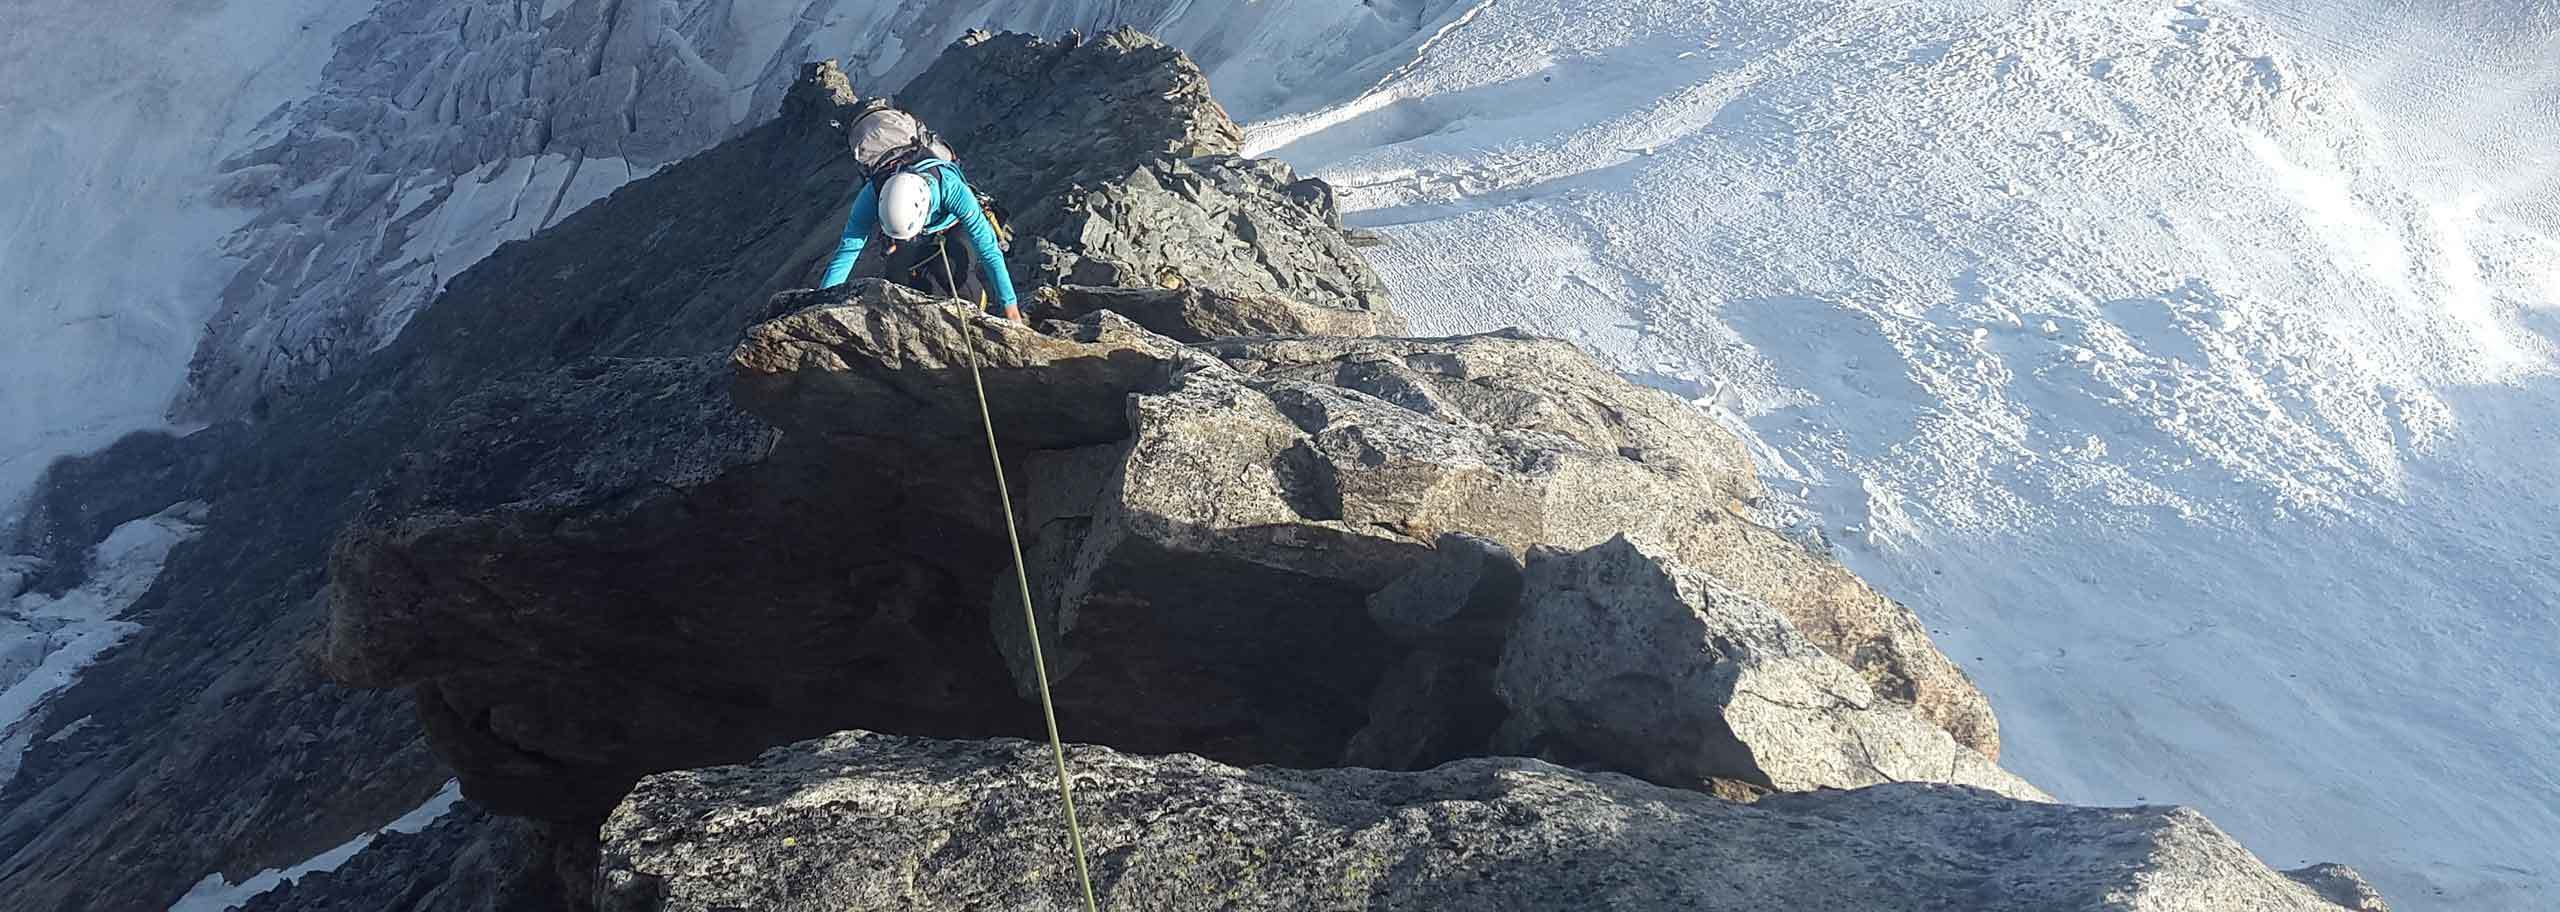 Rock Climbing in Courmayeur Mont Blanc with a Mountain Guide